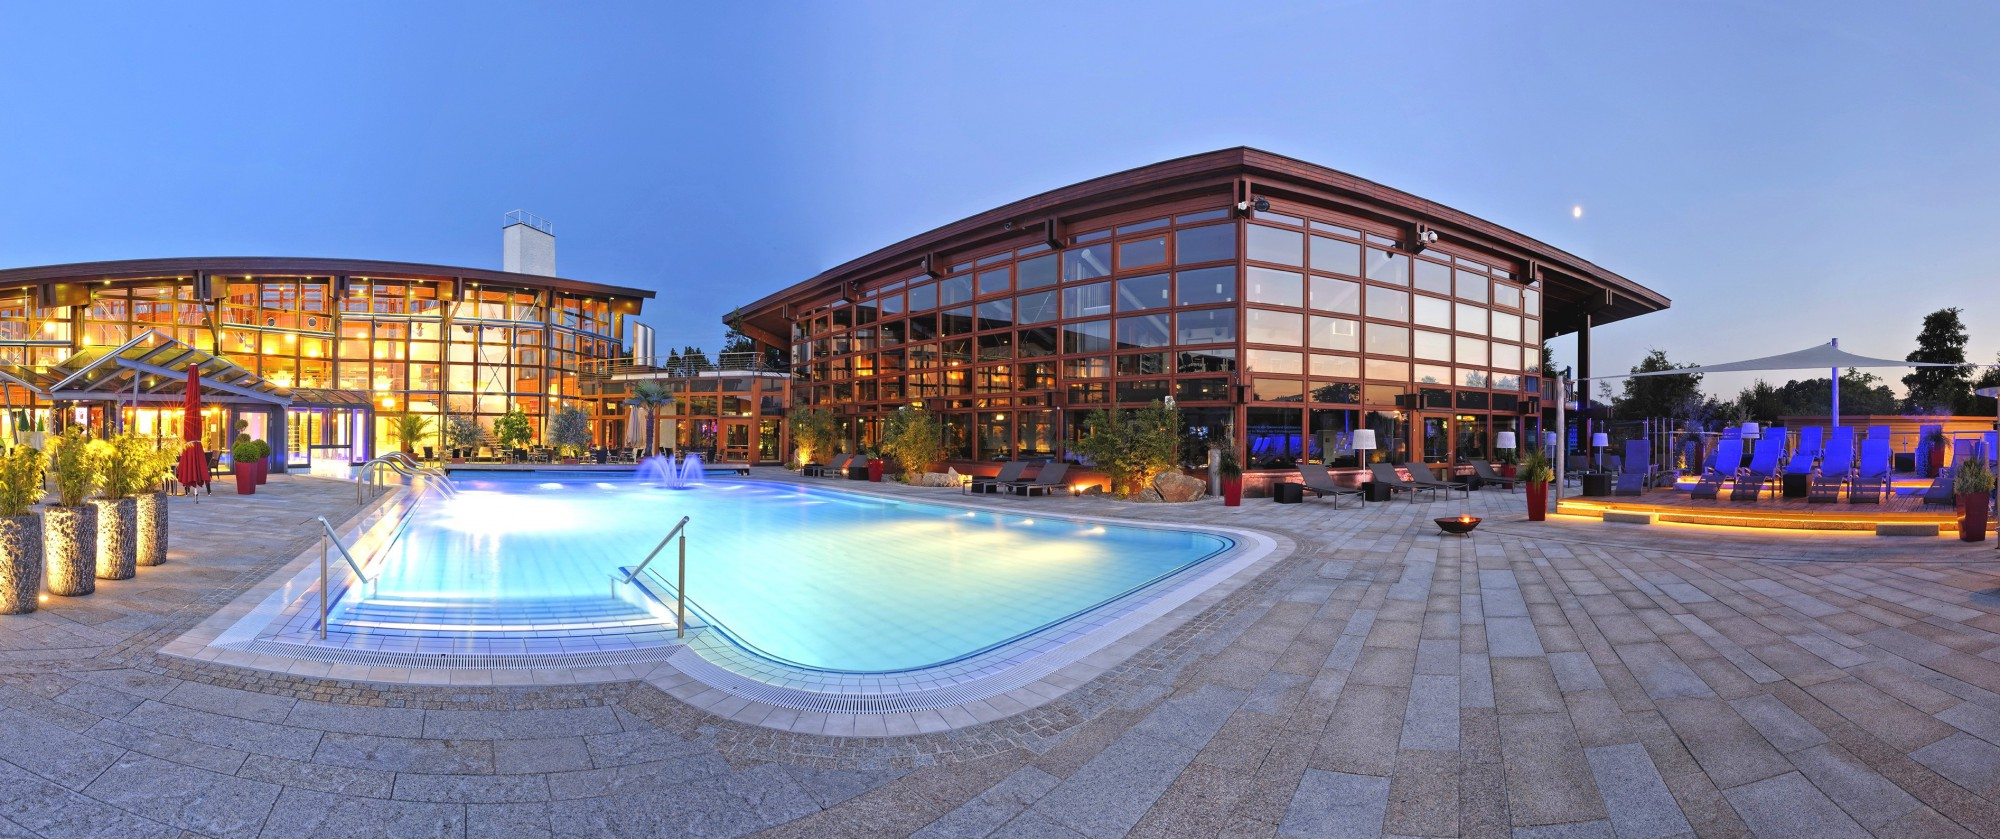 Foto: Obermain Therme Bad Staffelstein